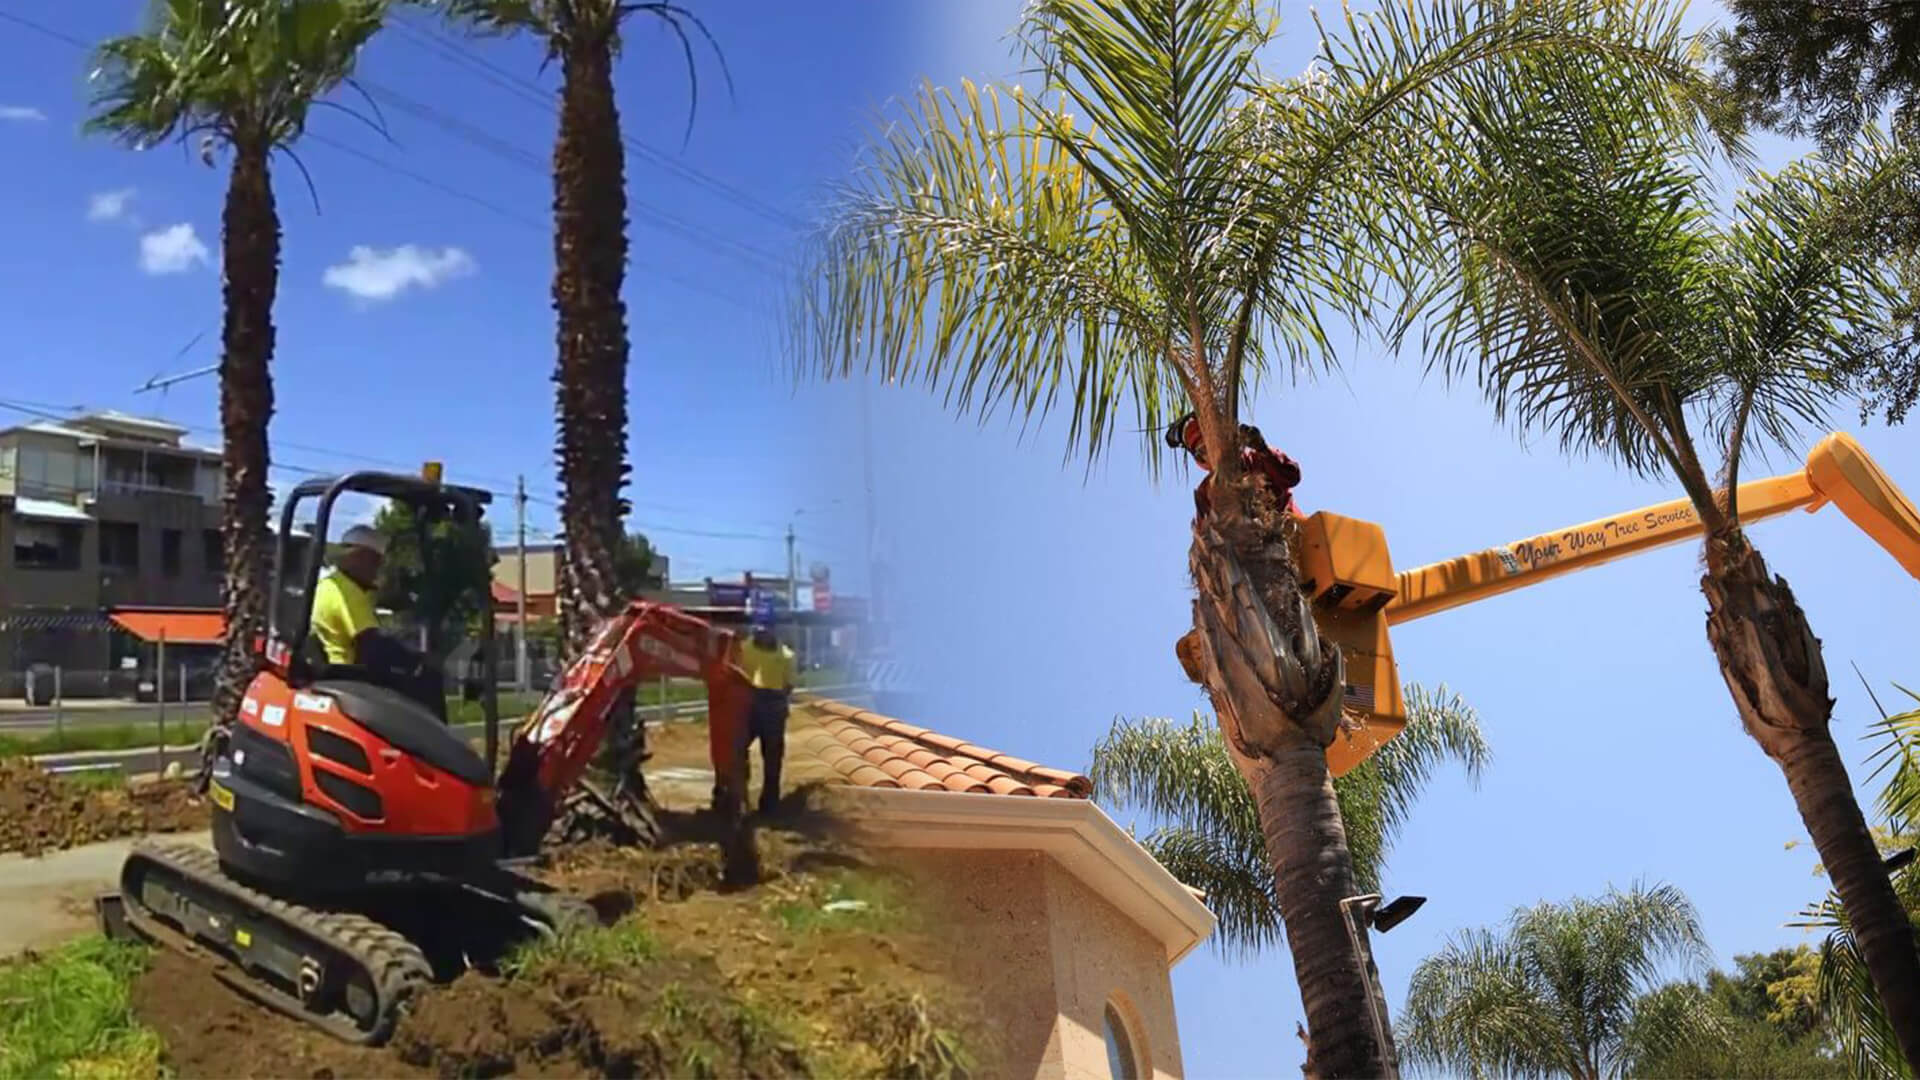 Palm tree trimming & palm tree removal-Tamiami FL Tree Trimming and Stump Grinding Services-We Offer Tree Trimming Services, Tree Removal, Tree Pruning, Tree Cutting, Residential and Commercial Tree Trimming Services, Storm Damage, Emergency Tree Removal, Land Clearing, Tree Companies, Tree Care Service, Stump Grinding, and we're the Best Tree Trimming Company Near You Guaranteed!